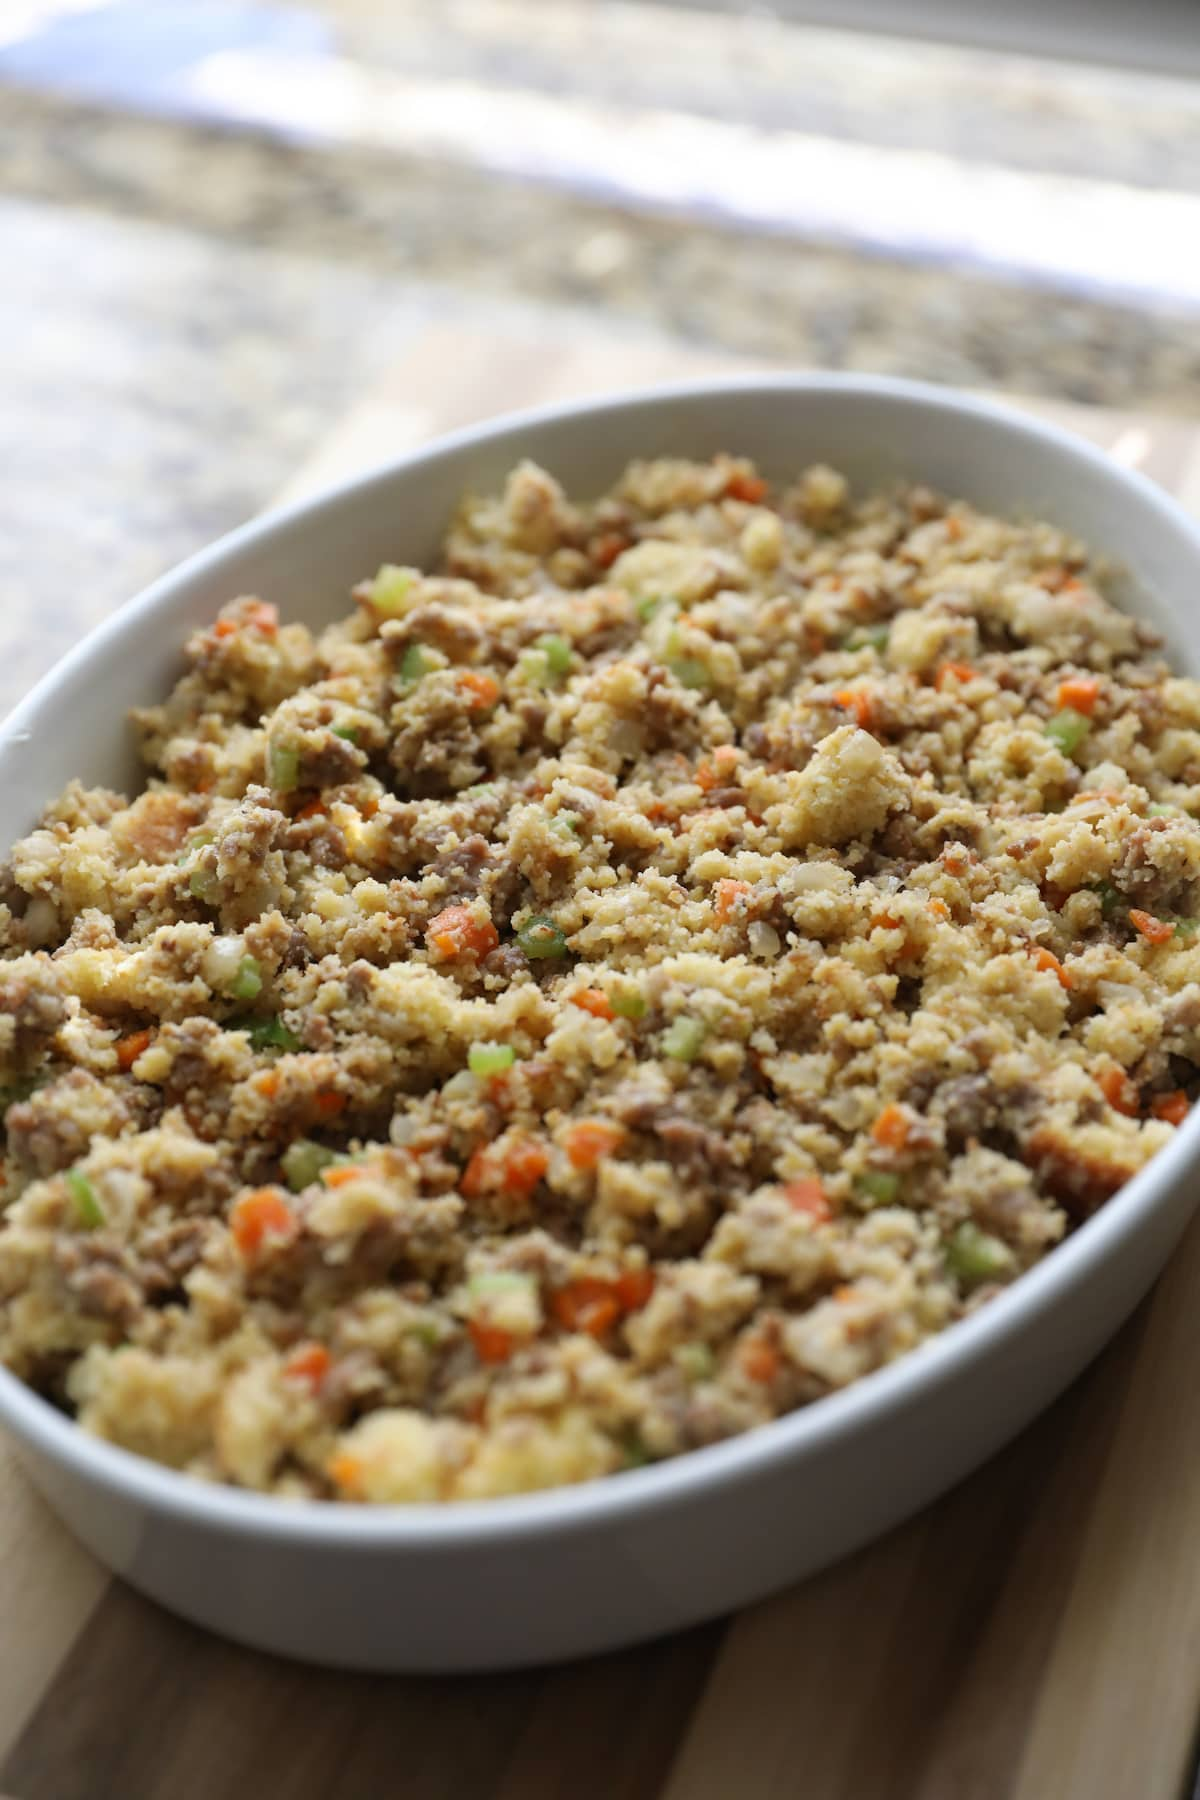 cornbread dressing in baking dish